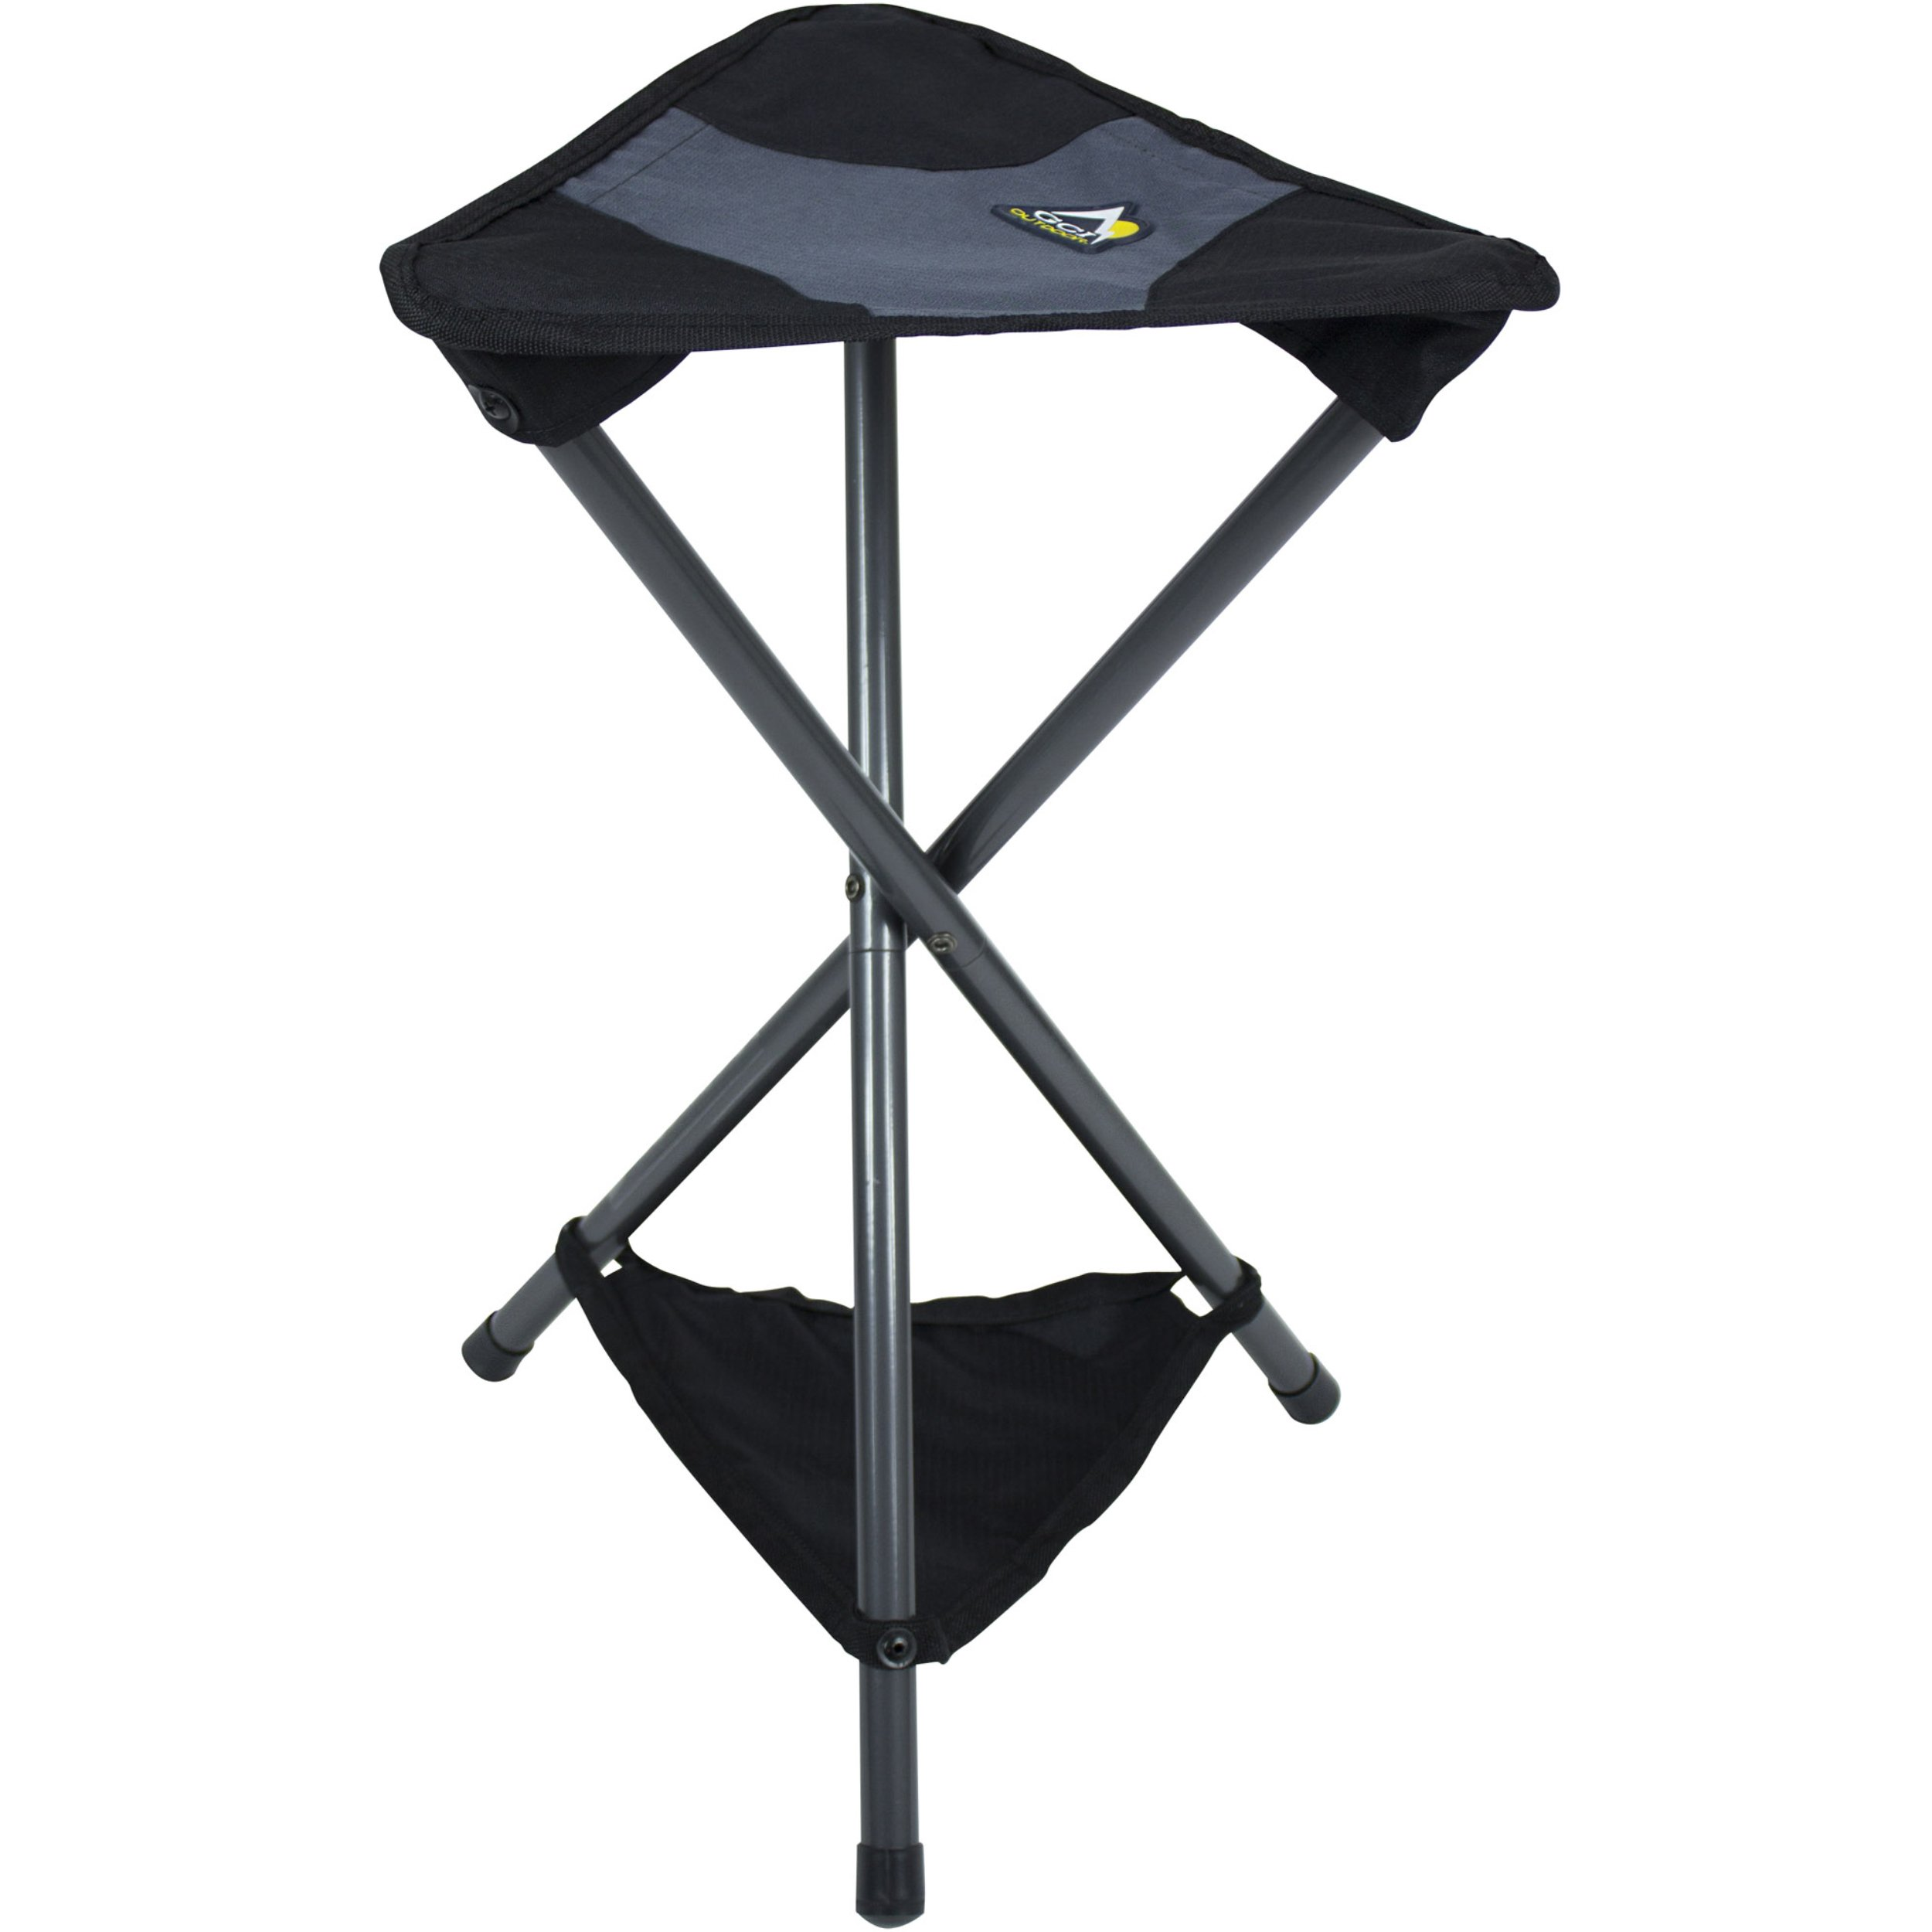 GCI Outdoor PackSeat Portable Tripod Camping Sports Stool by GCI Outdoor